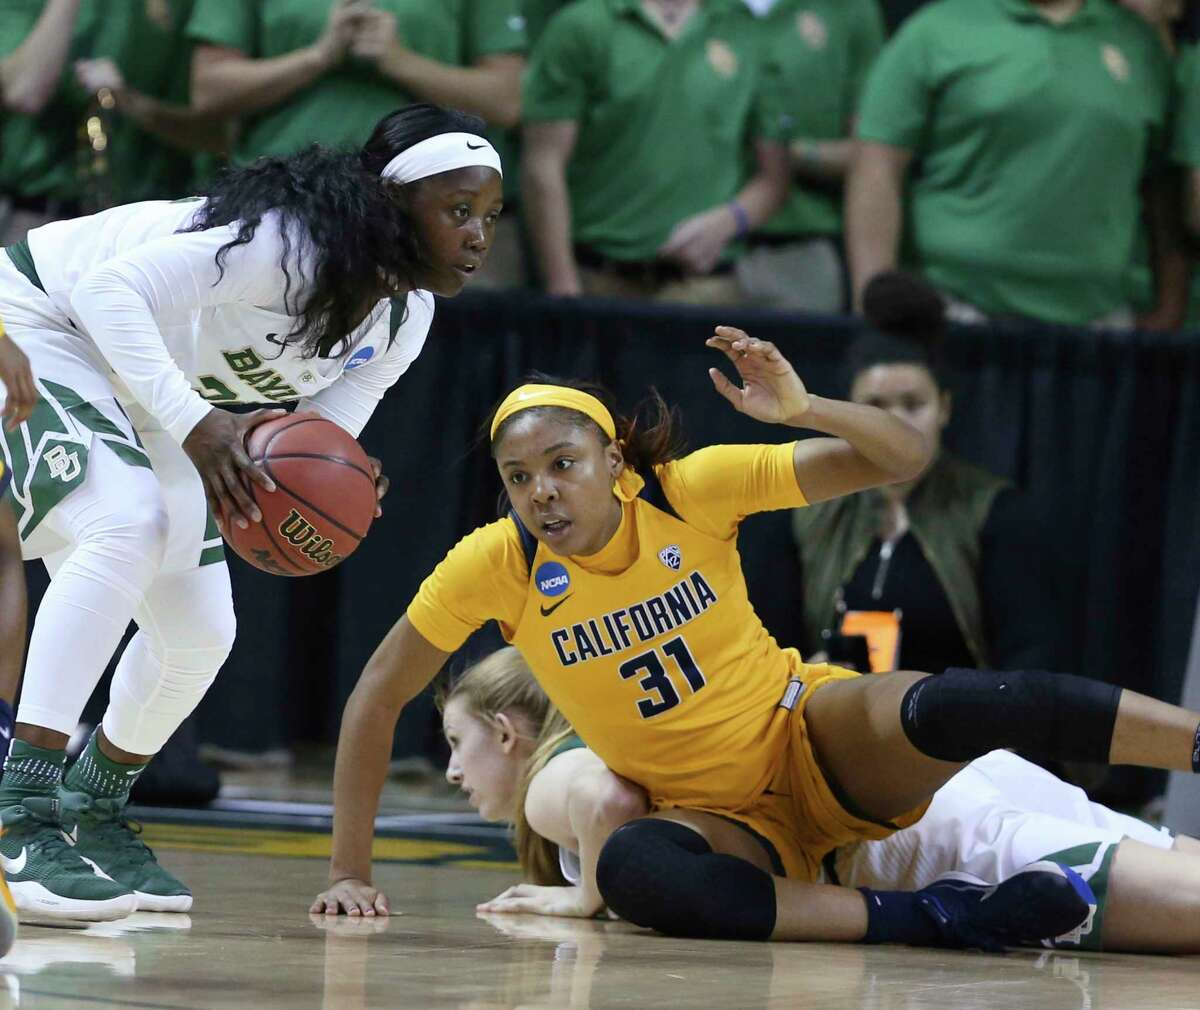 Baylor guard Alexis Jones, left, grabs a loose ball next to California forward Kristine Anigwe during the first half of a second-round game in the NCAA women's college basketball tournament in Waco, Texas, Monday, March 20, 2017.